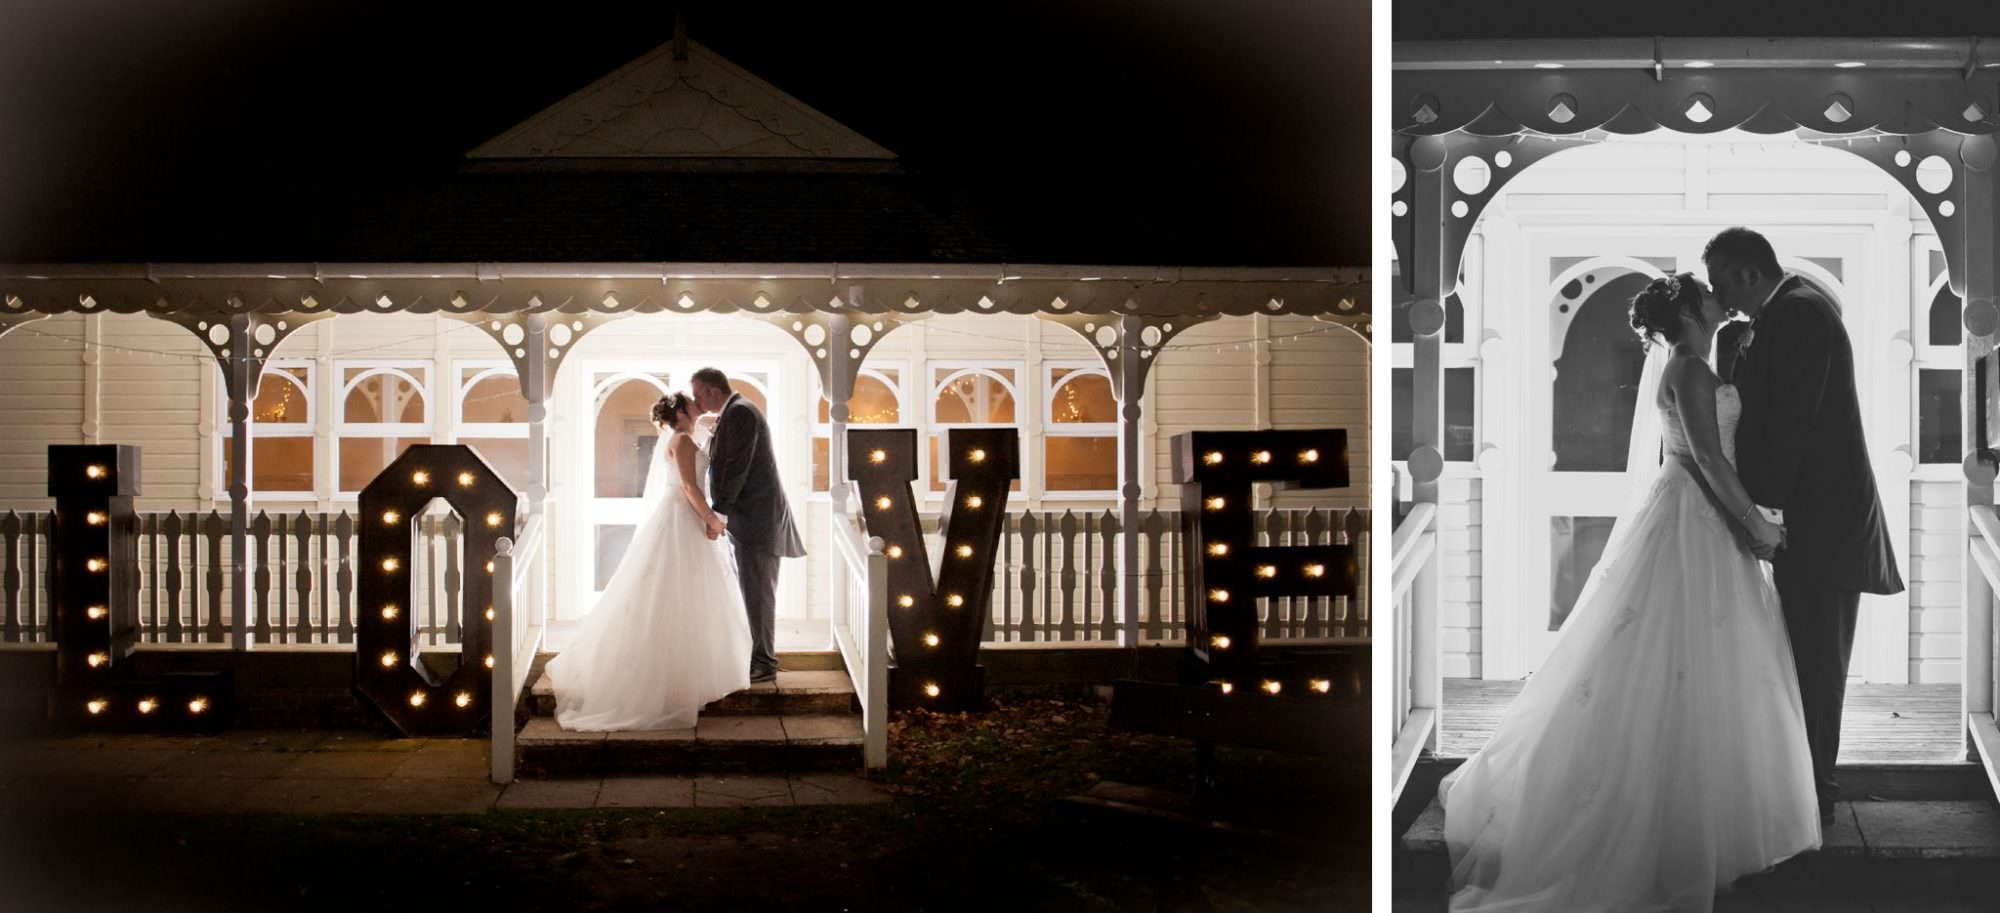 LOVE letters by Simply Flower at Kings Arms Hotel Christchurch